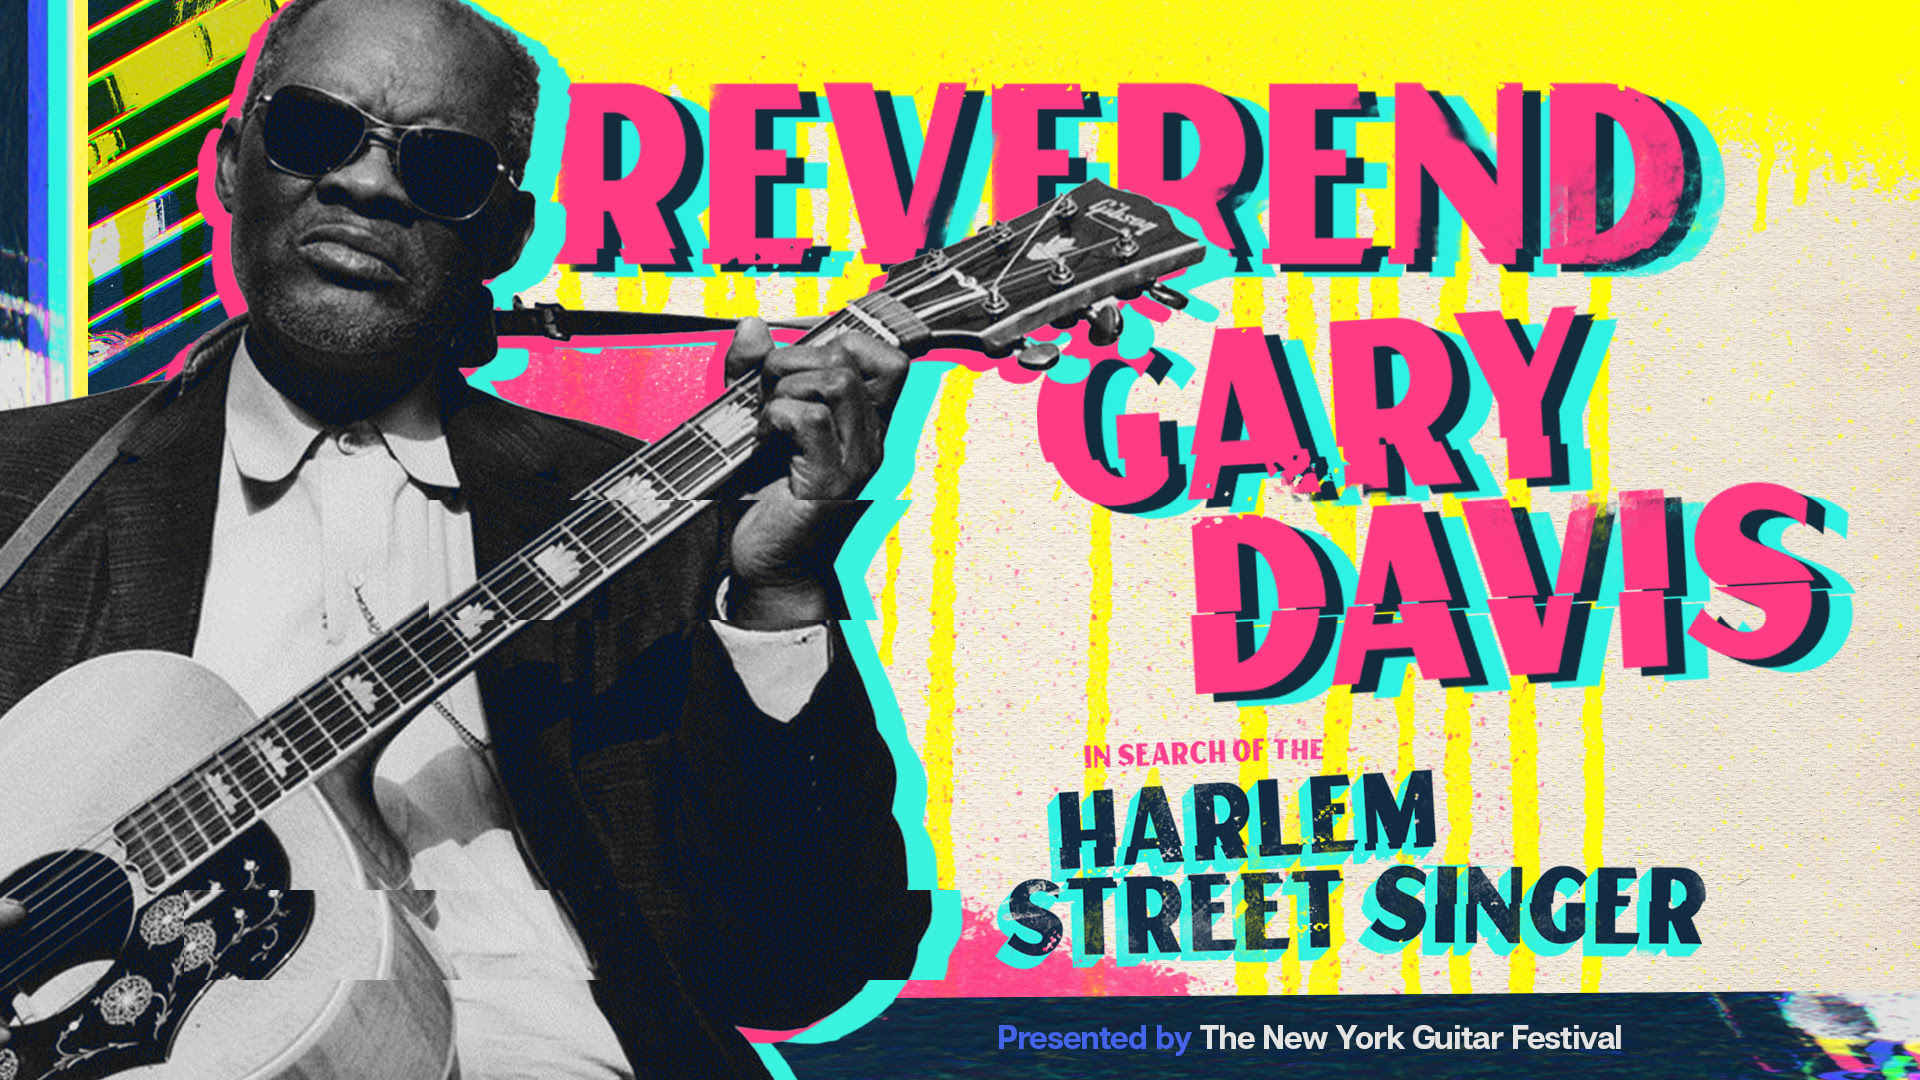 New York Guitar Festival Announces Set Two of  Reverend Gary Davis: In Search of Harlem Street Singer